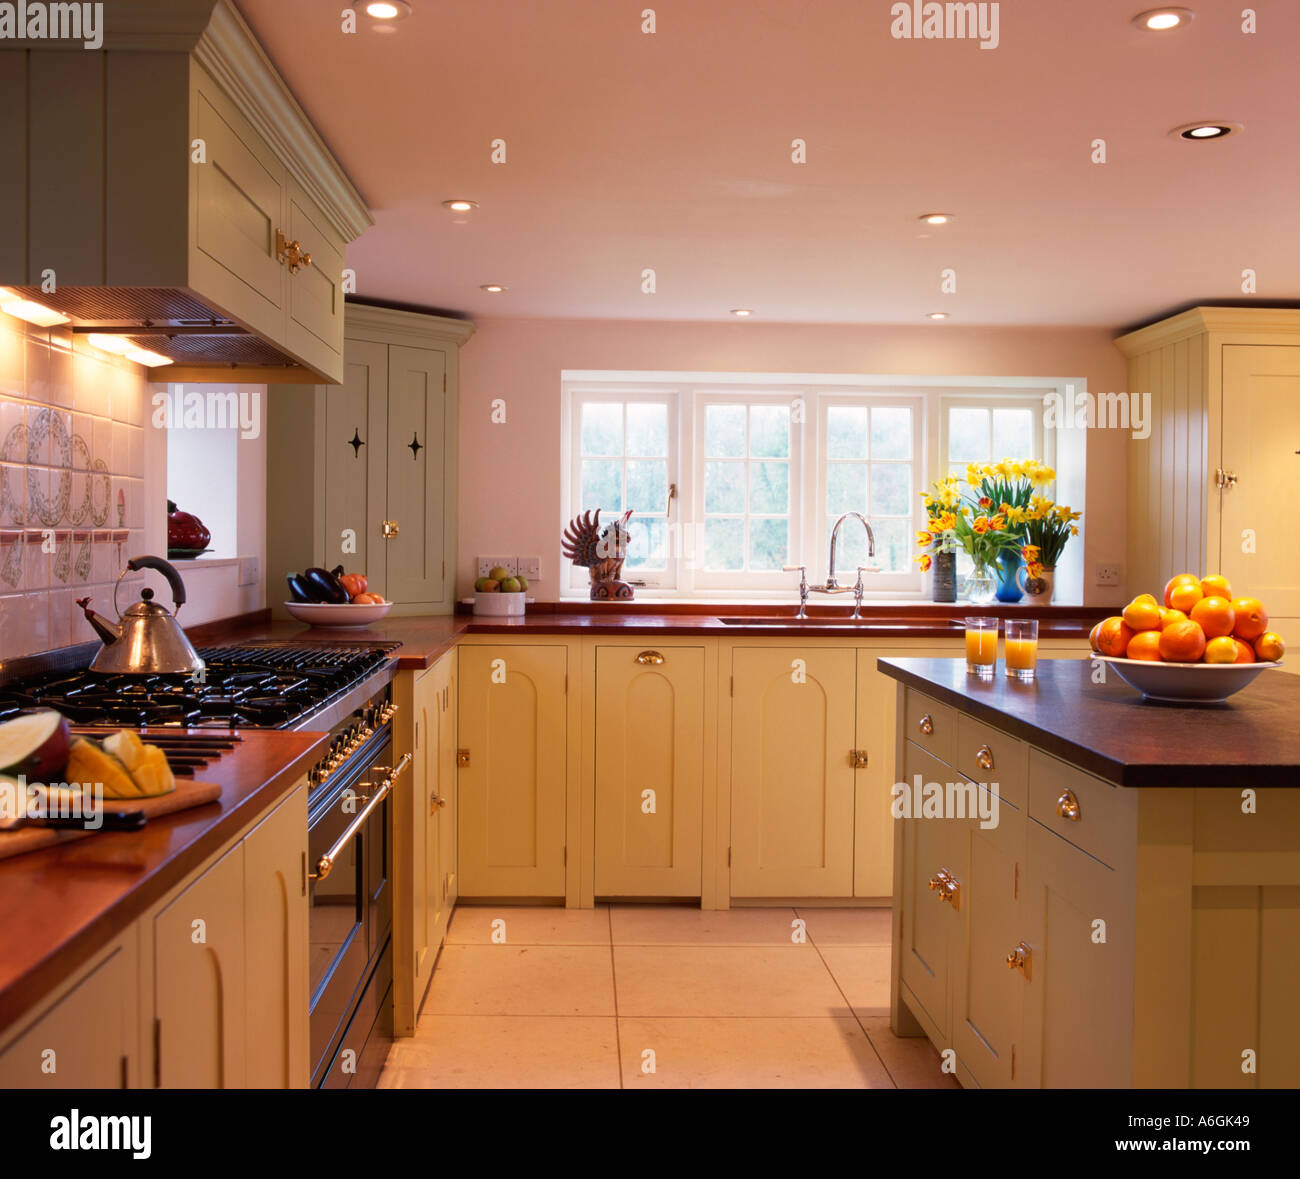 A Kitchen Interior With Spotlights UK